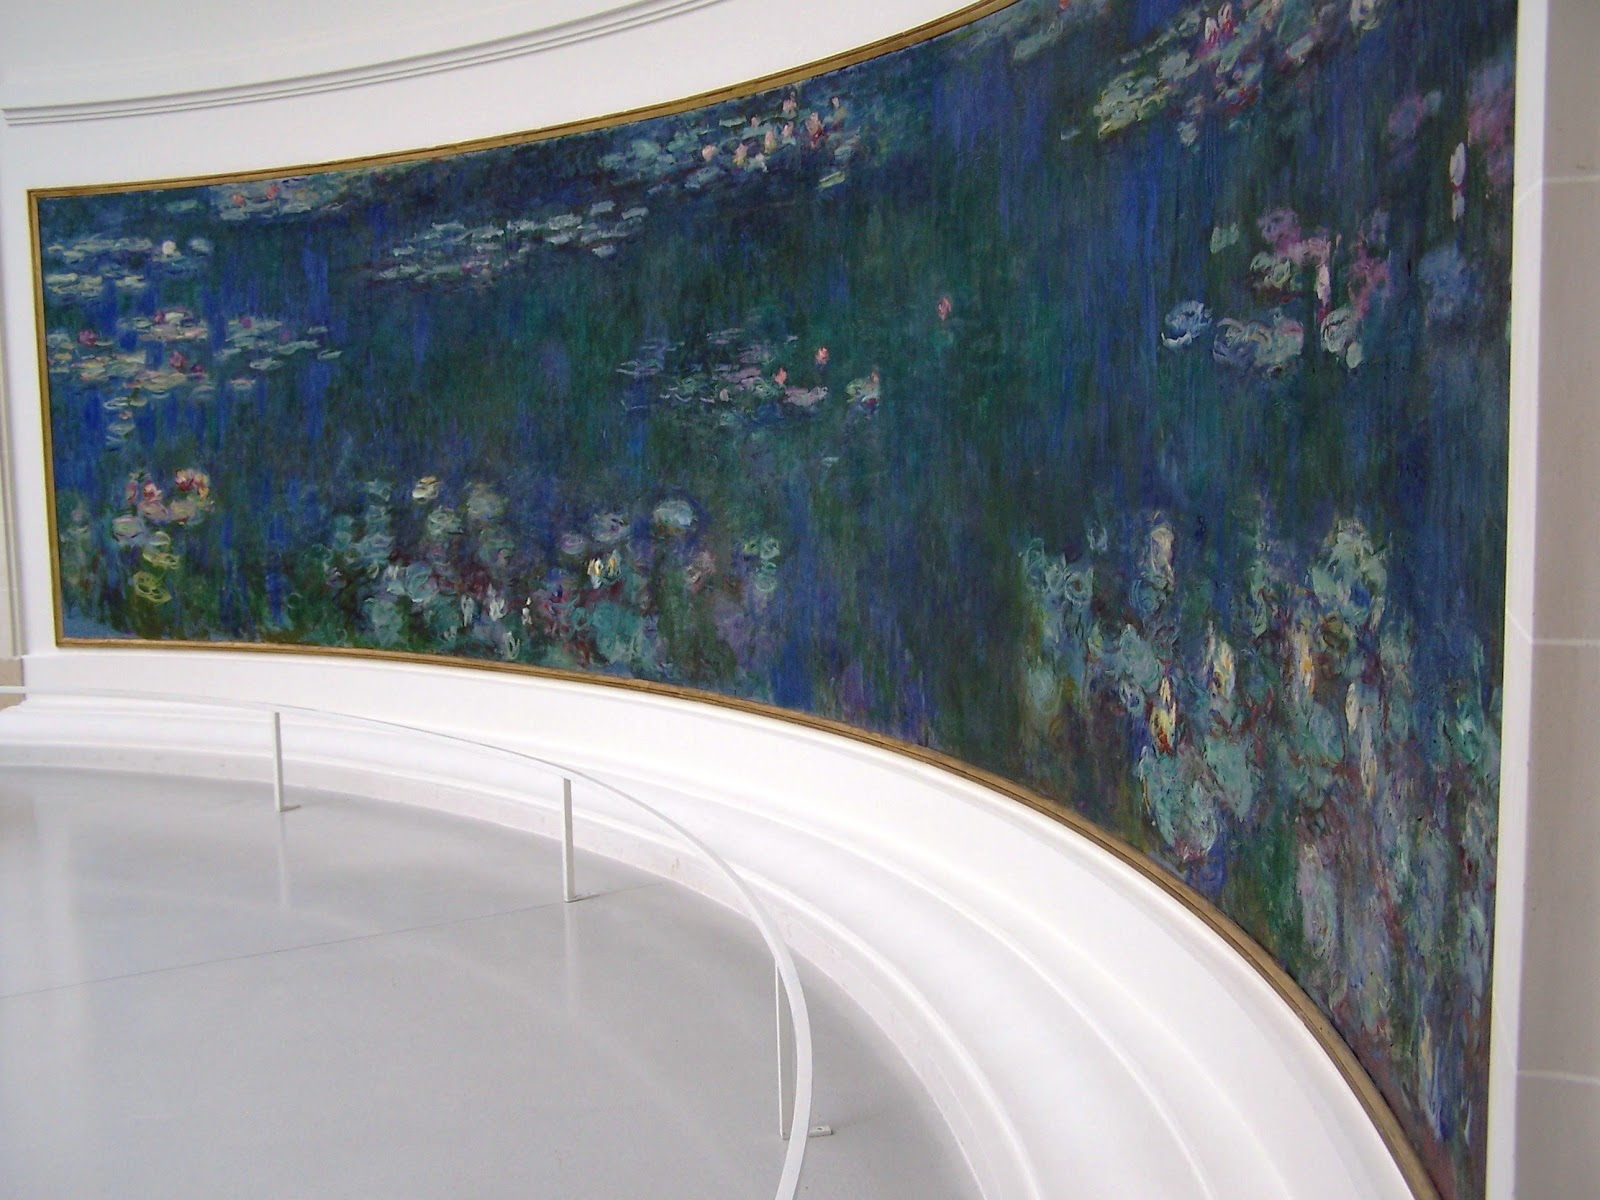 A great europe trip planner if you love monet don 39 t miss this museum p - Le bassin aux nympheas ...